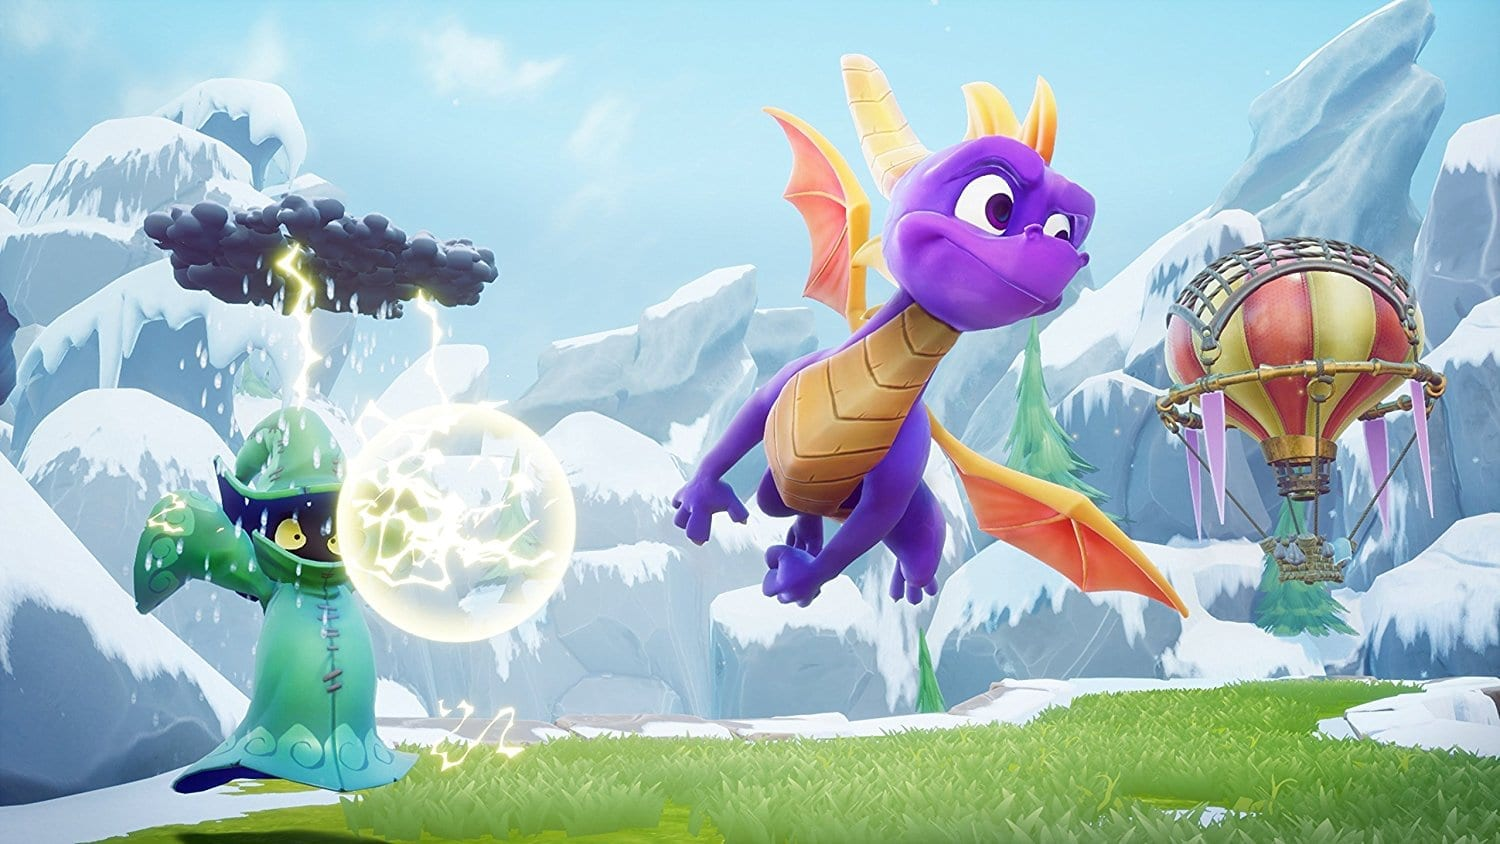 Spyro The Dragon 4 Seemingly Teased By Activision